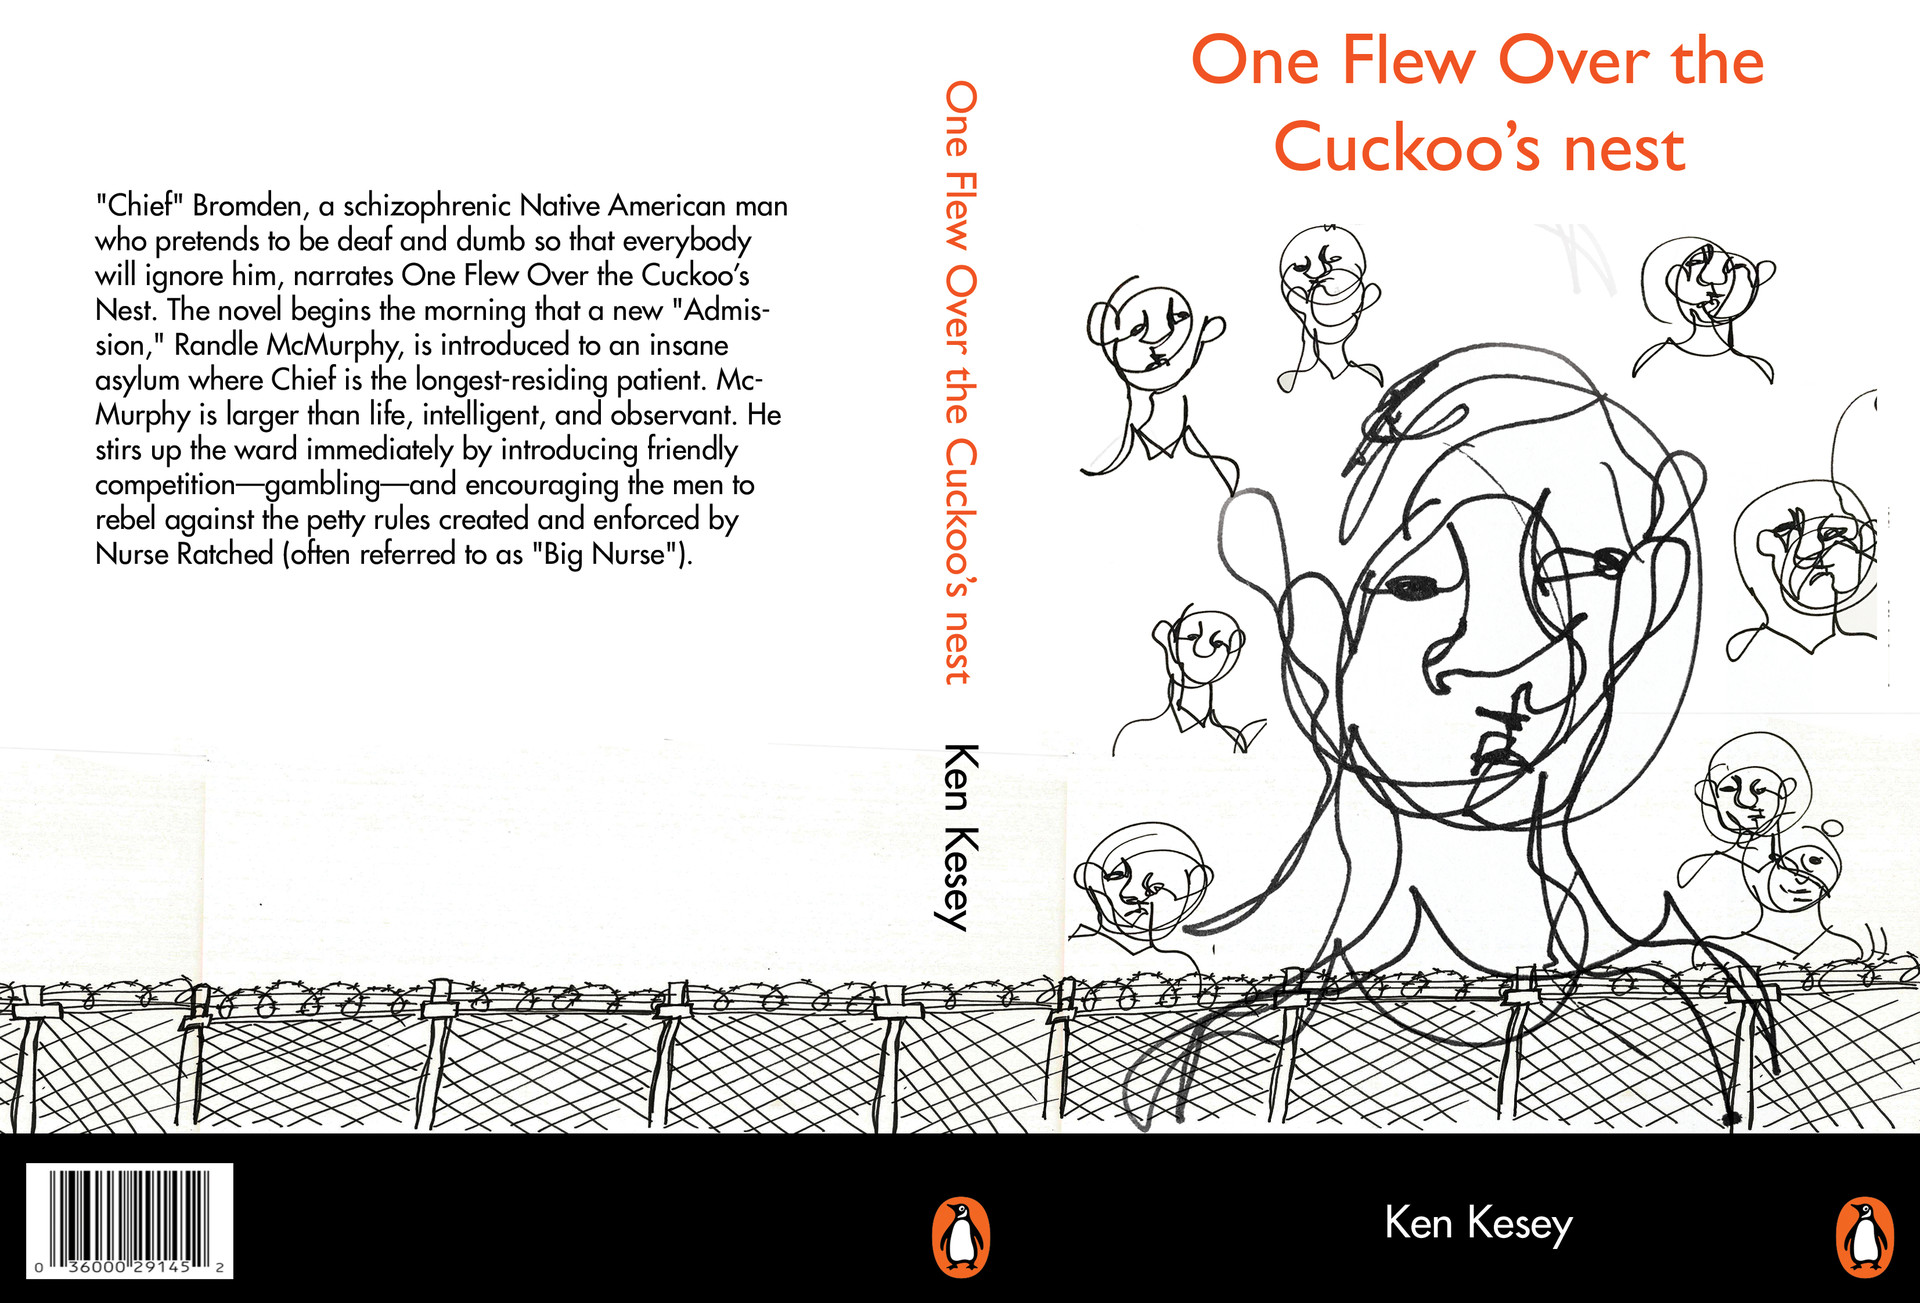 character chief bromden story one flew over cuckoo s nest Everything you ever wanted to know about the characters in one flew over the cuckoo's nest, written by experts just for you.